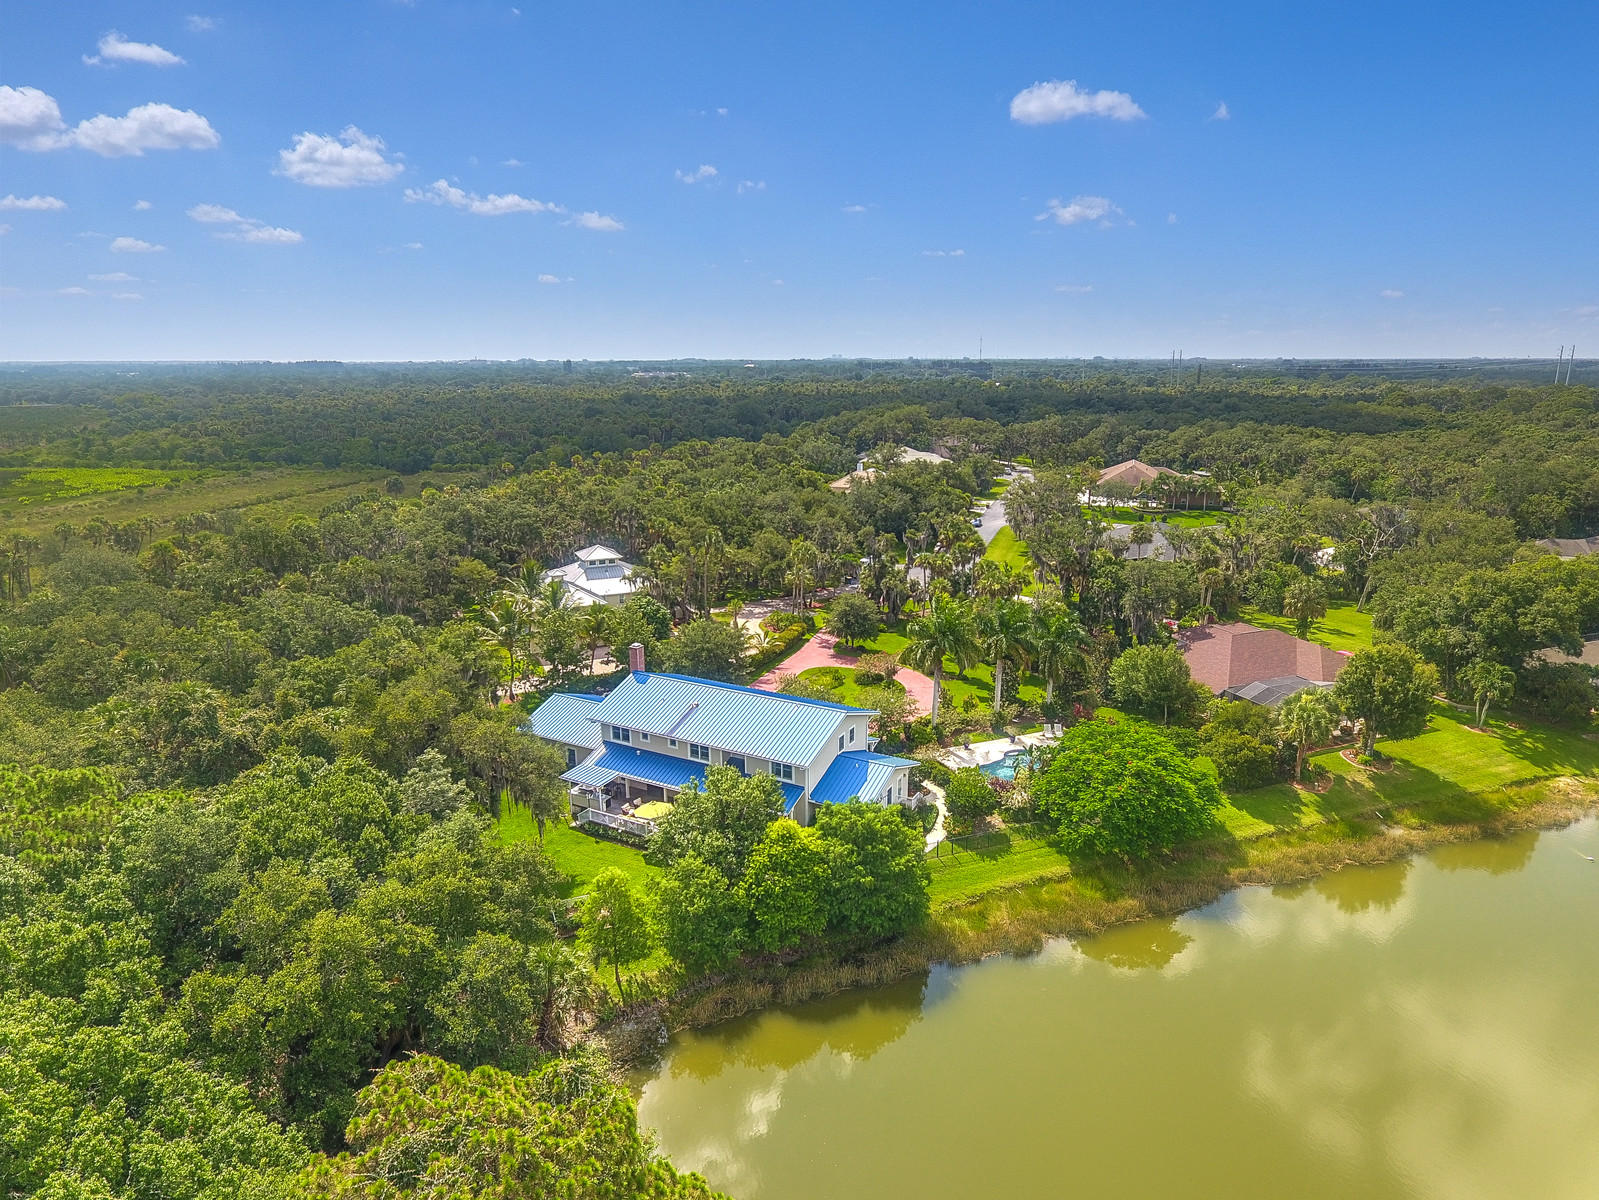 WINDING CREEK LOTS 24 AND 25 (0.95 AC) (OR 3144-933)